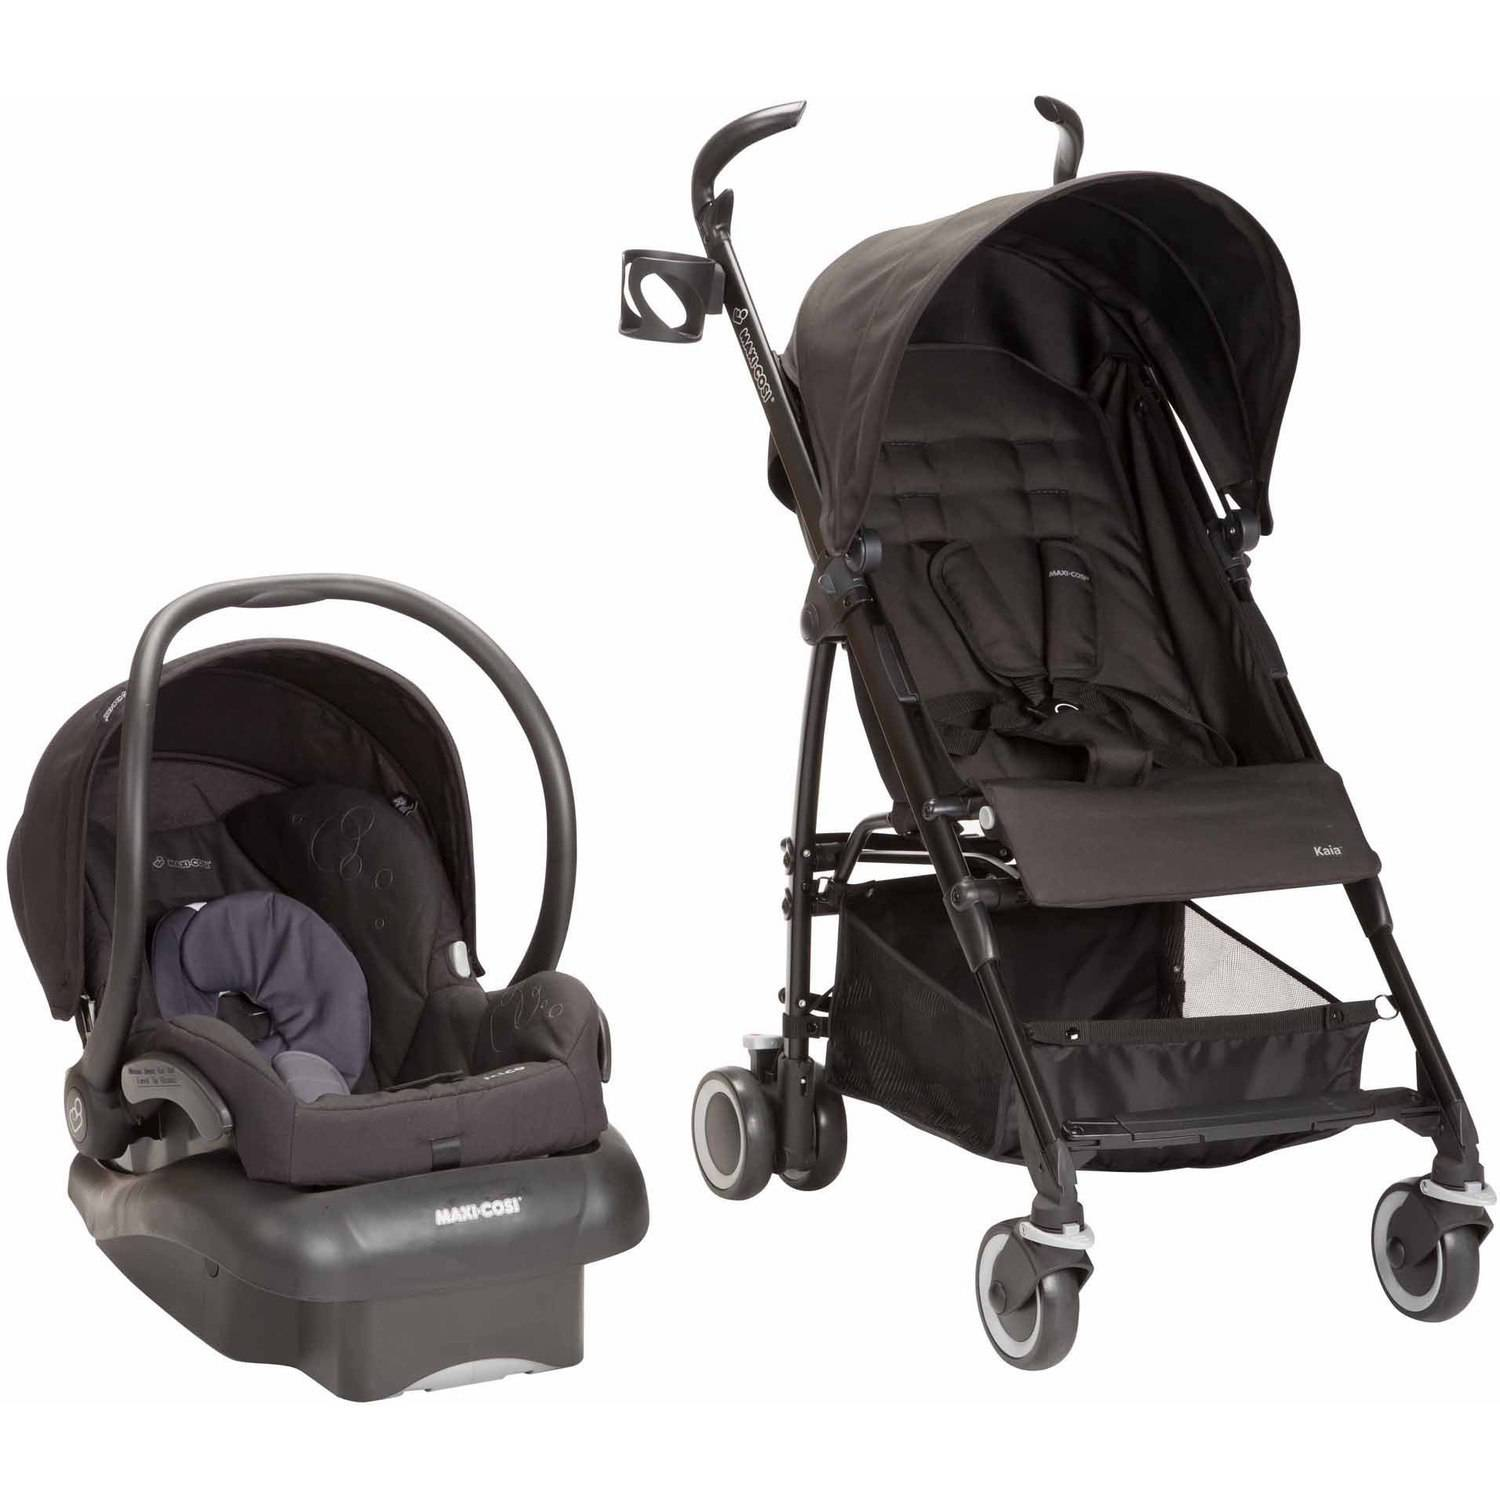 Maxi Cosi Kaia/Mico Nxt 3-in-1 Travel System, Total Black